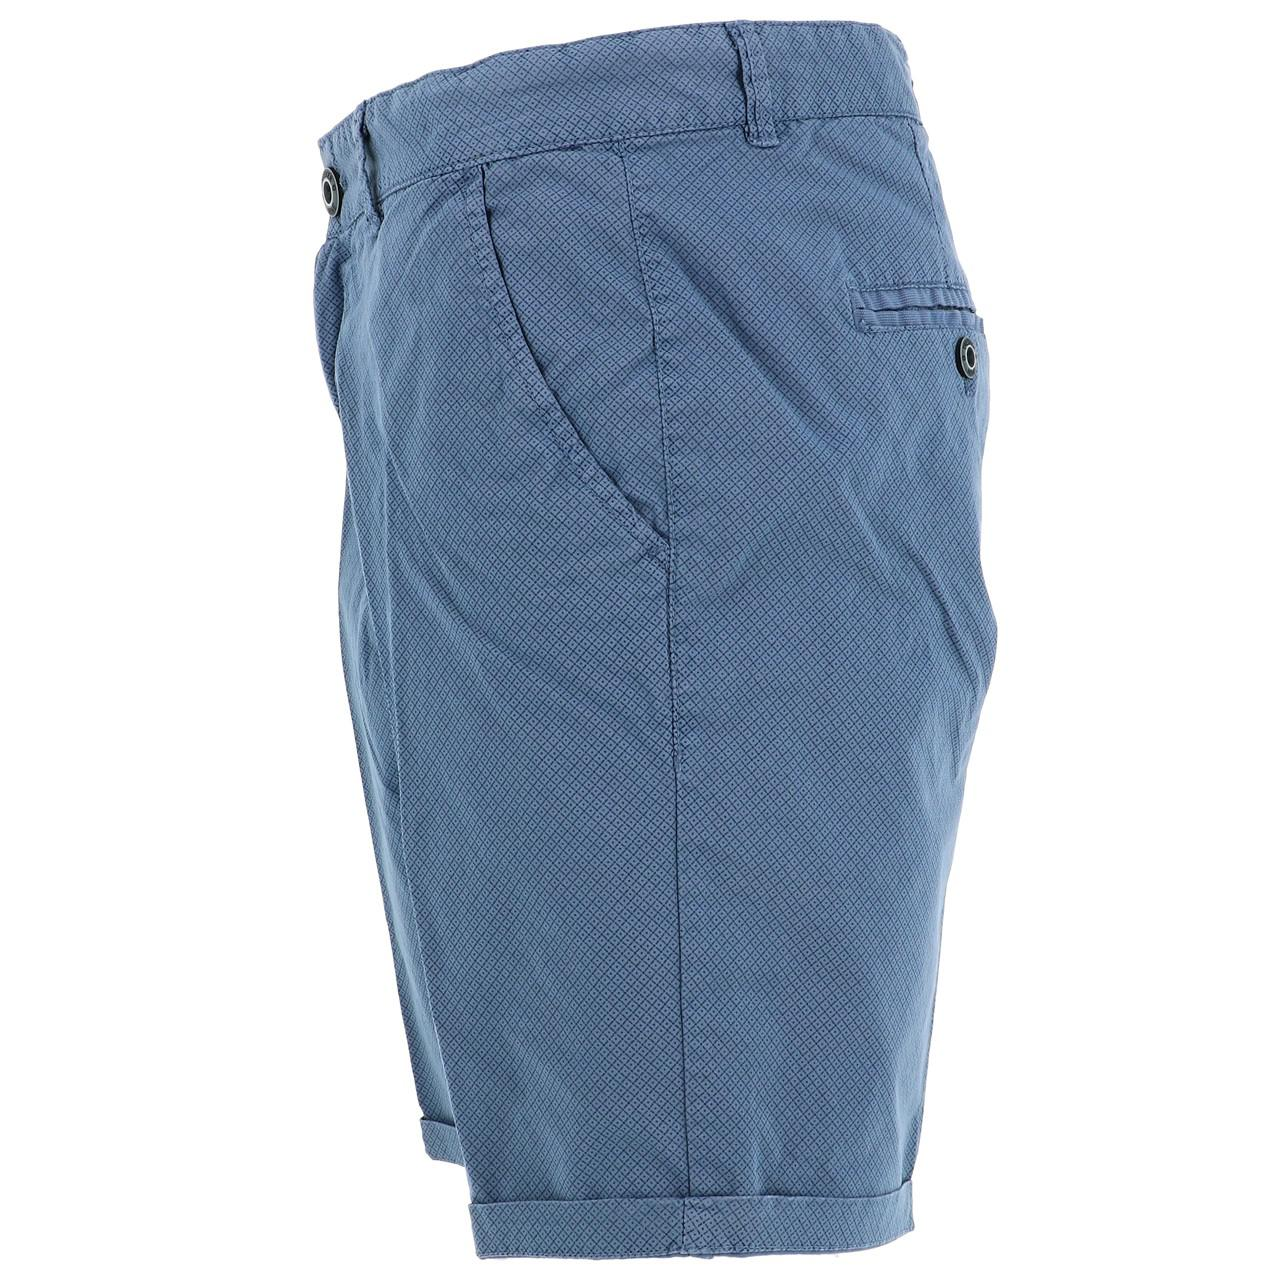 Bermuda-Shorts-Treeker9-Arizona-Chino-Strechy-Bl-Blue-47253-New thumbnail 2